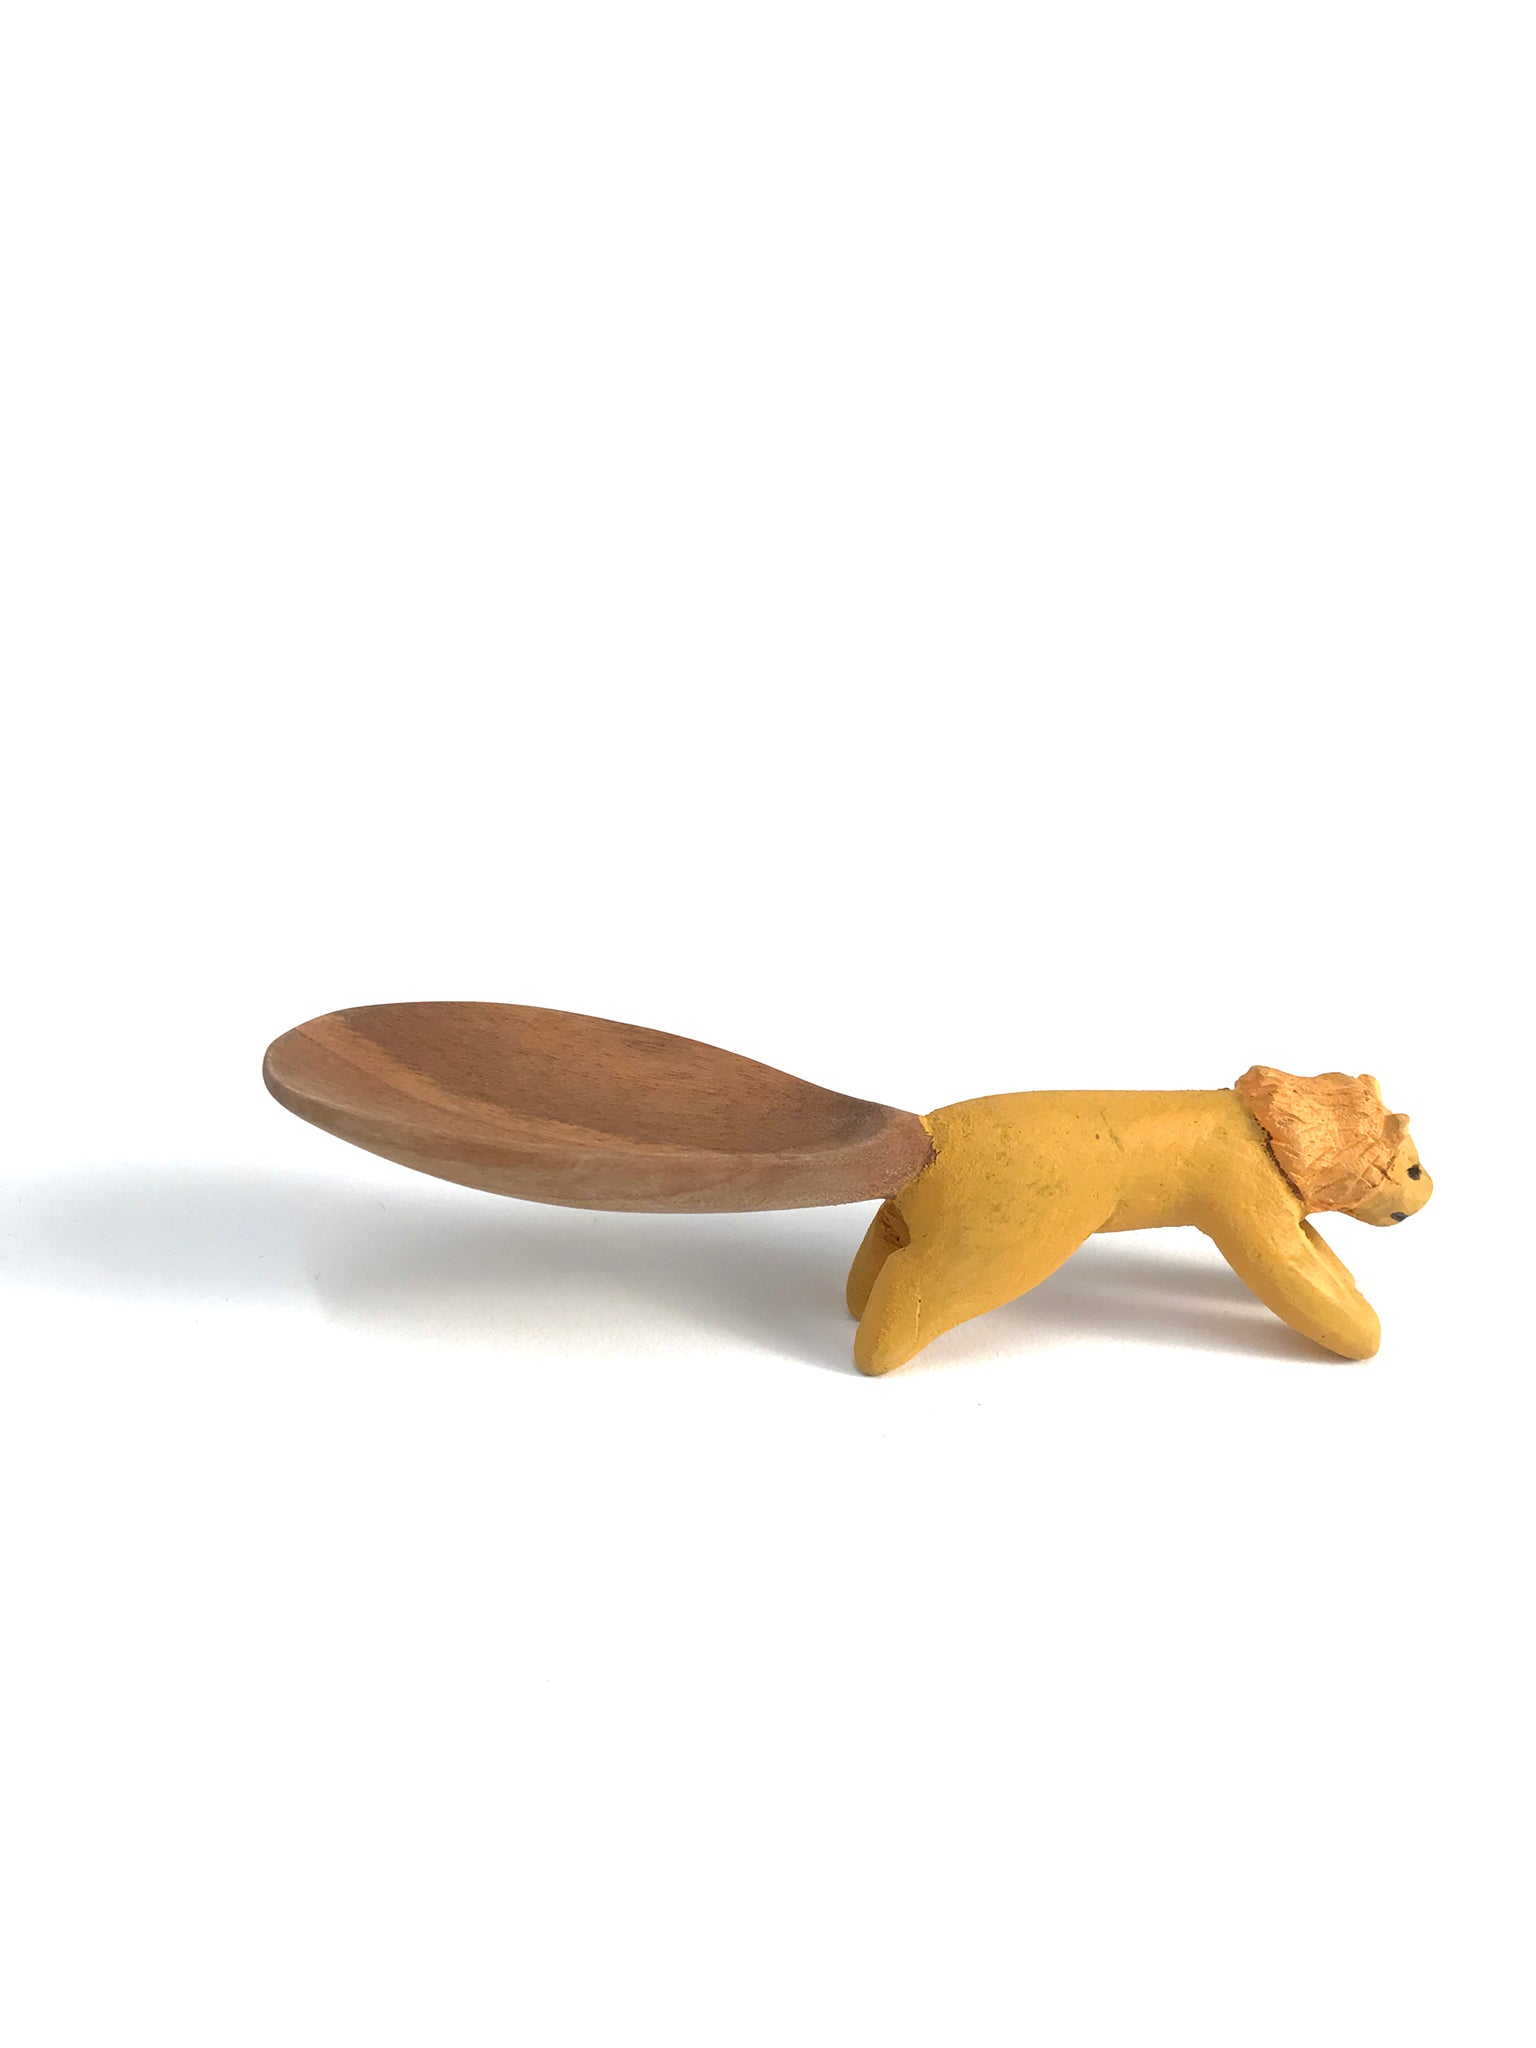 Lion spoon, hand-carved wood